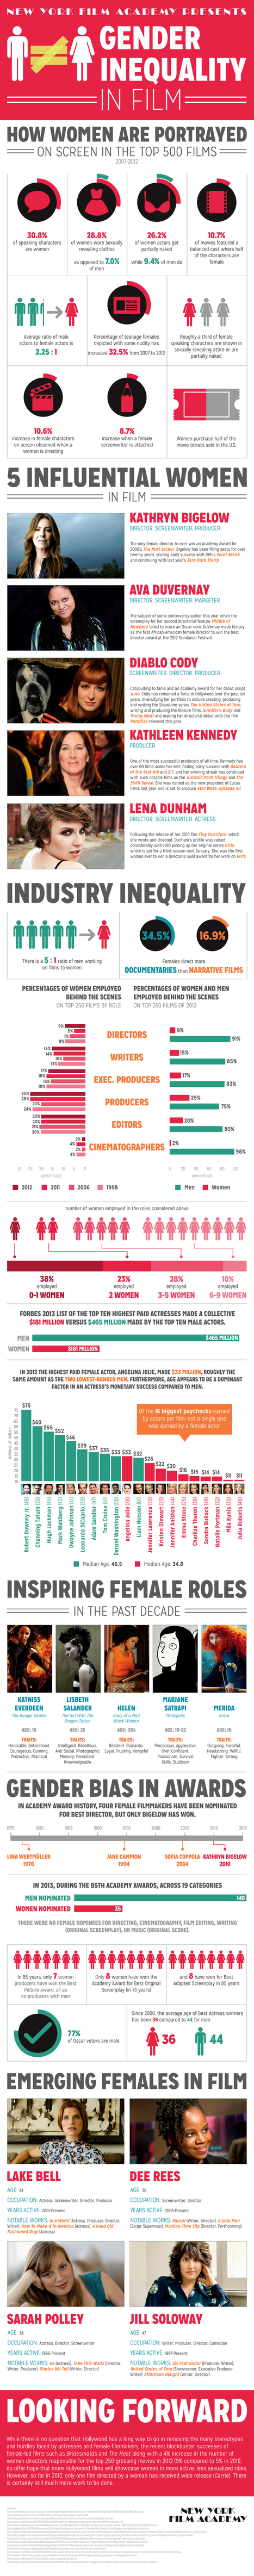 Gender Inequality in Film - An Infographic | Mulher na mídia | Scoop.it